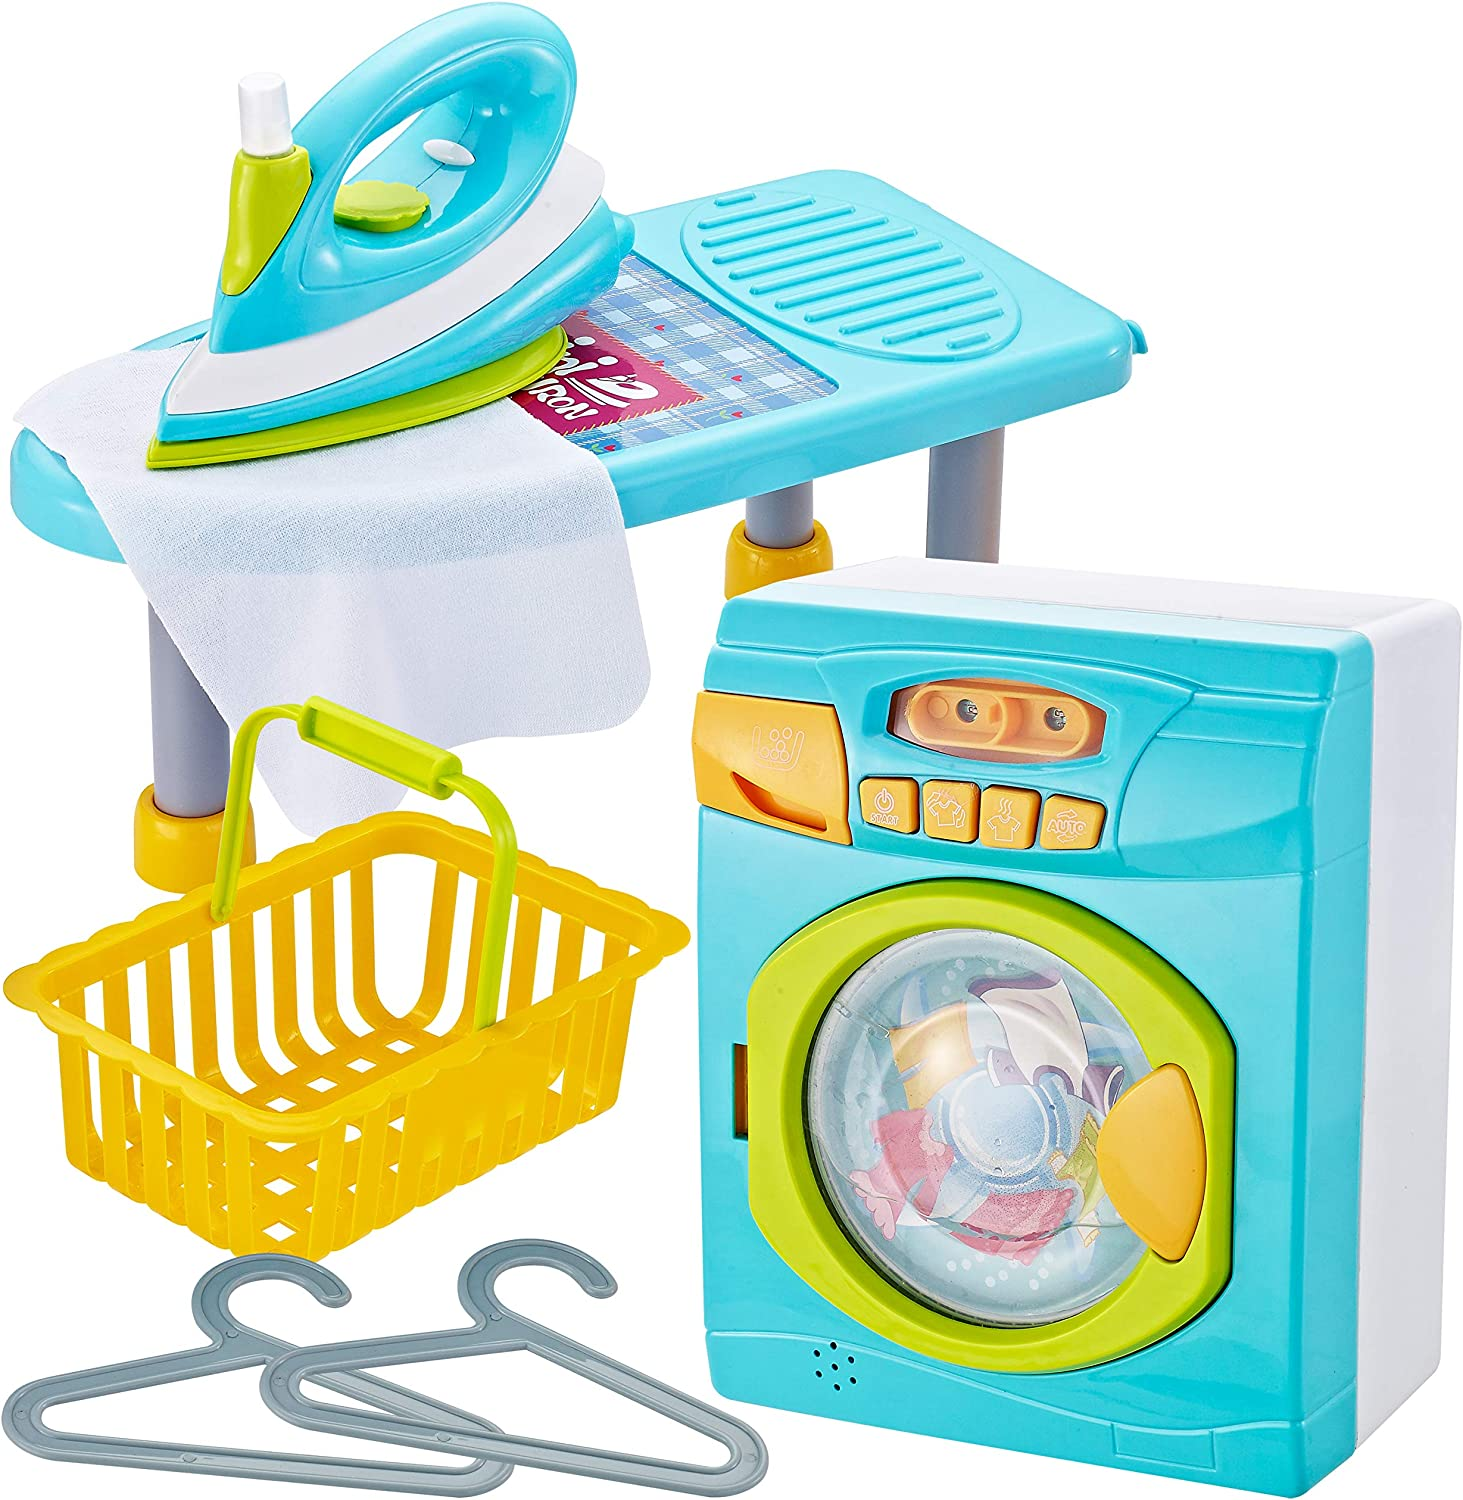 JOYIN Realistic Mini Laundry and Ironing Board Housekeeping Cleaning Toy Playset for Kids and Toddler Pretend Play Toy Set